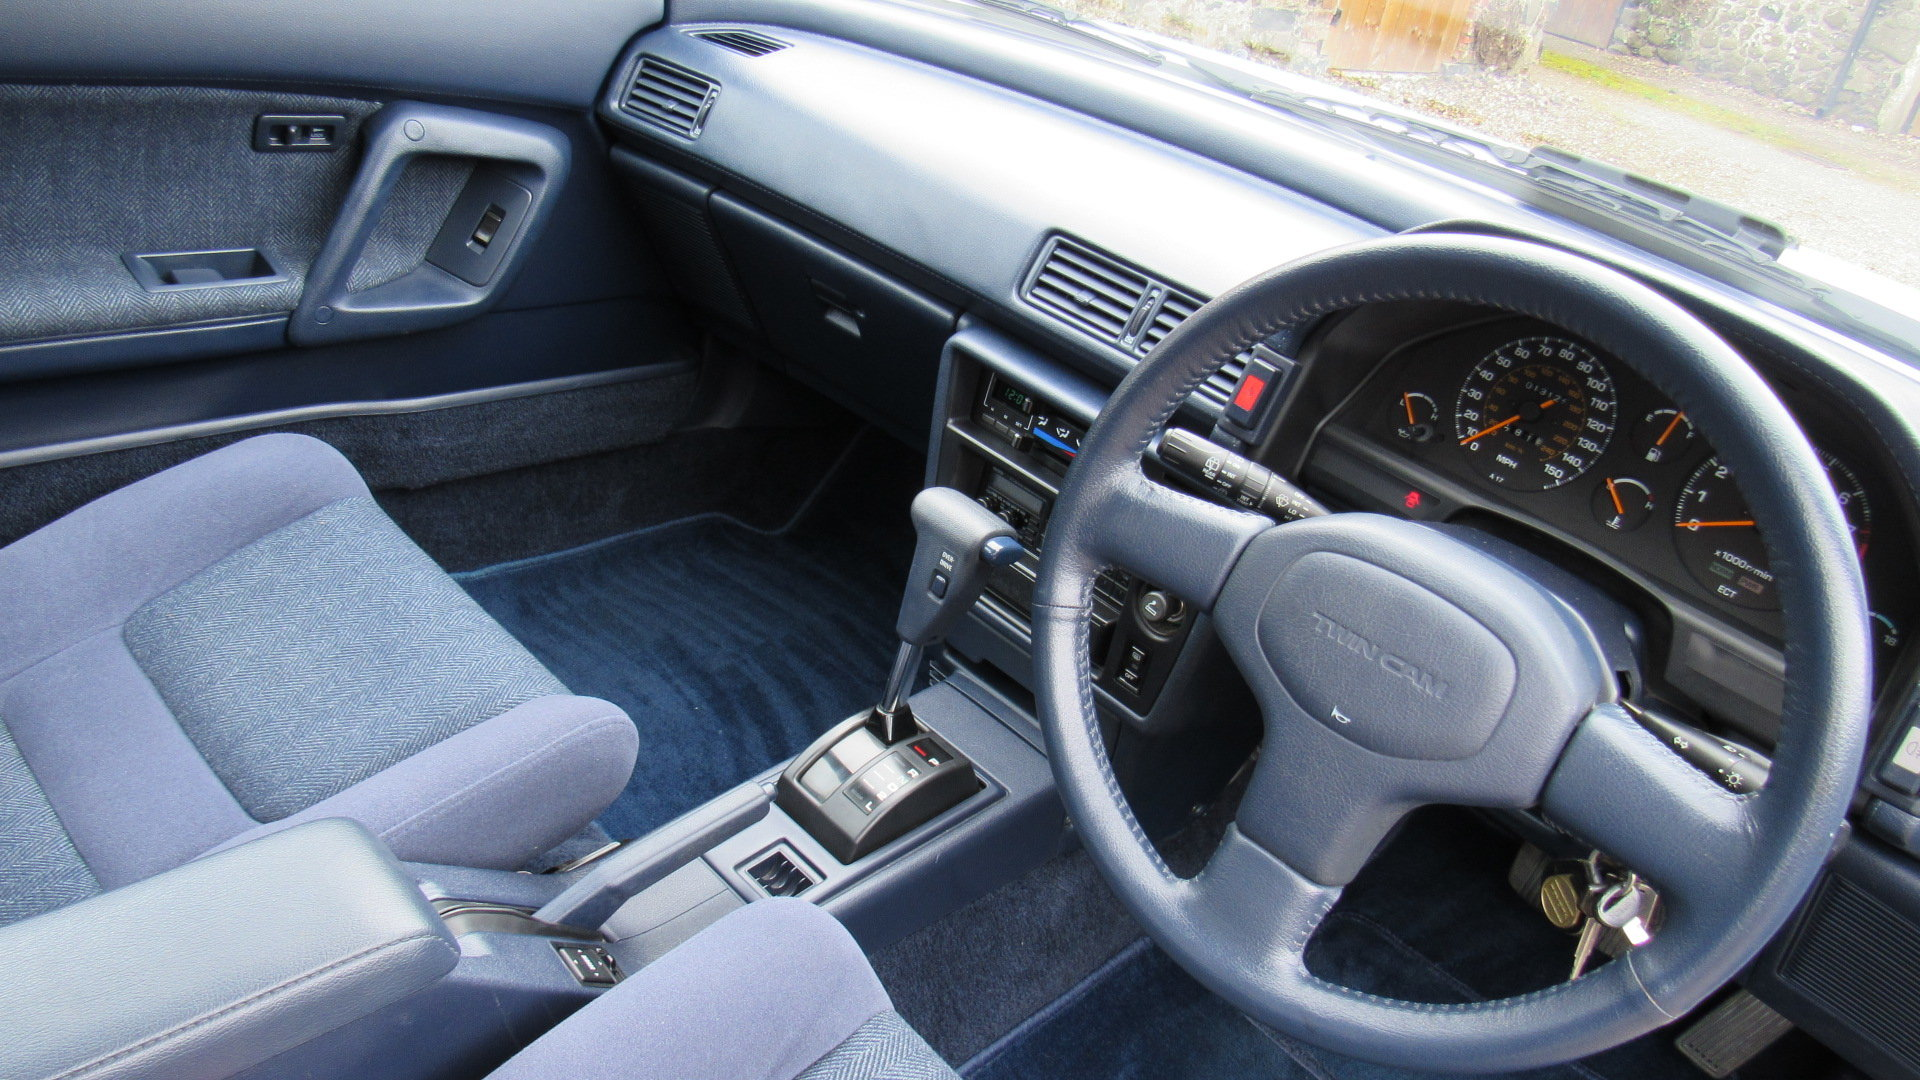 1988 Toyota Celica GT  For Sale (picture 4 of 5)